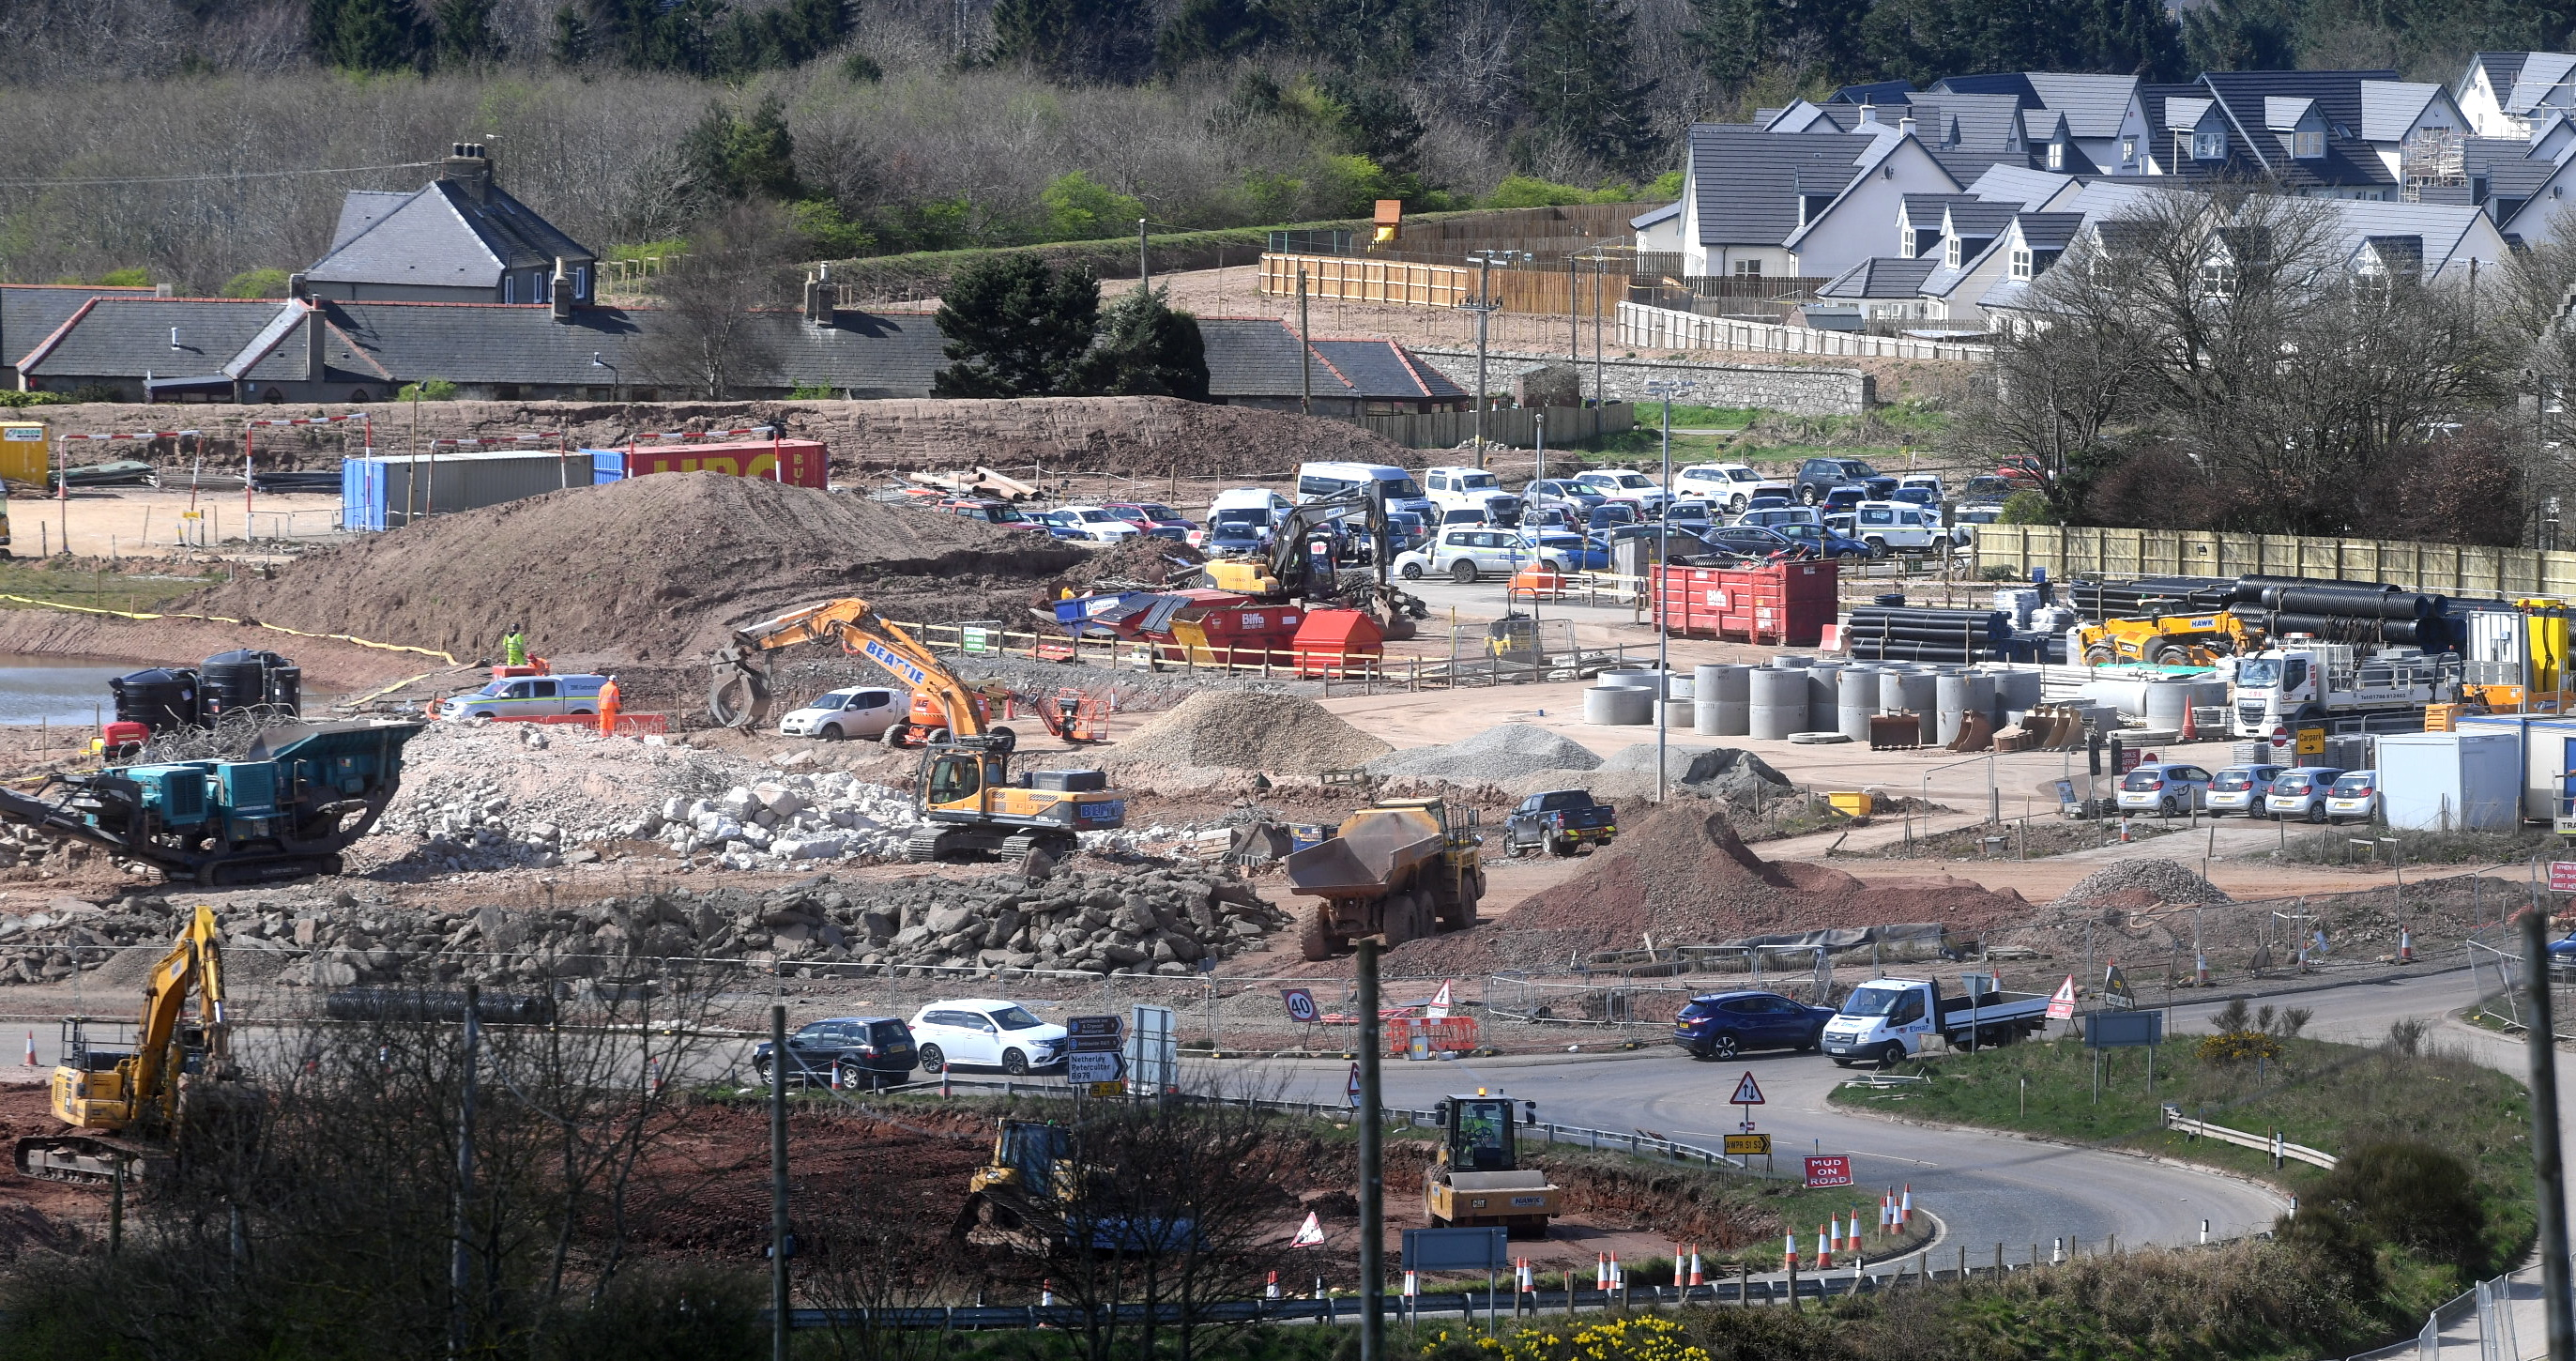 Diggers and mounds of earth as AWPR work at Stonehaven continues.